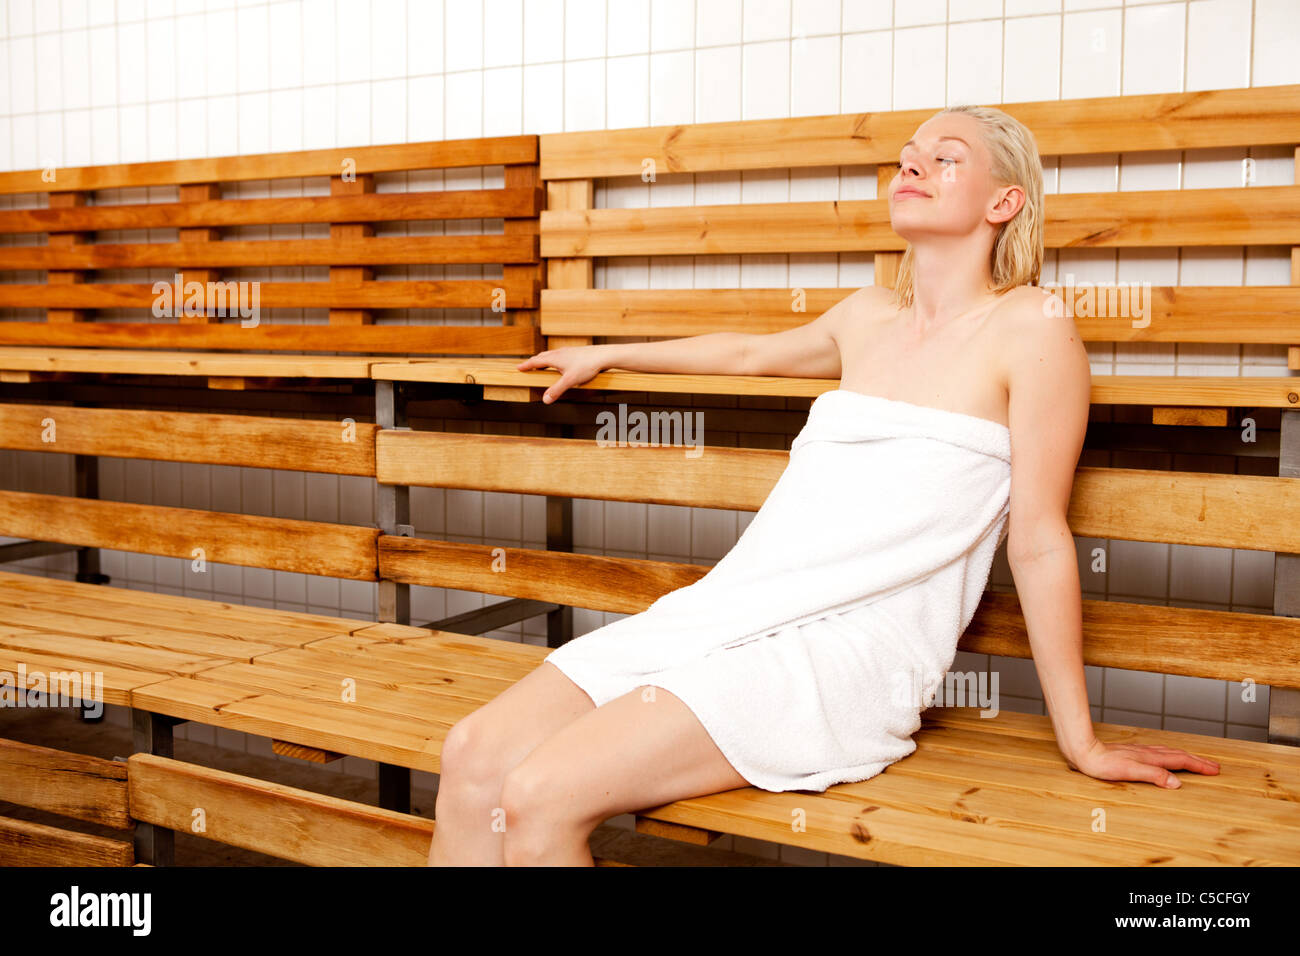 sauna bath stockfotos sauna bath bilder alamy. Black Bedroom Furniture Sets. Home Design Ideas